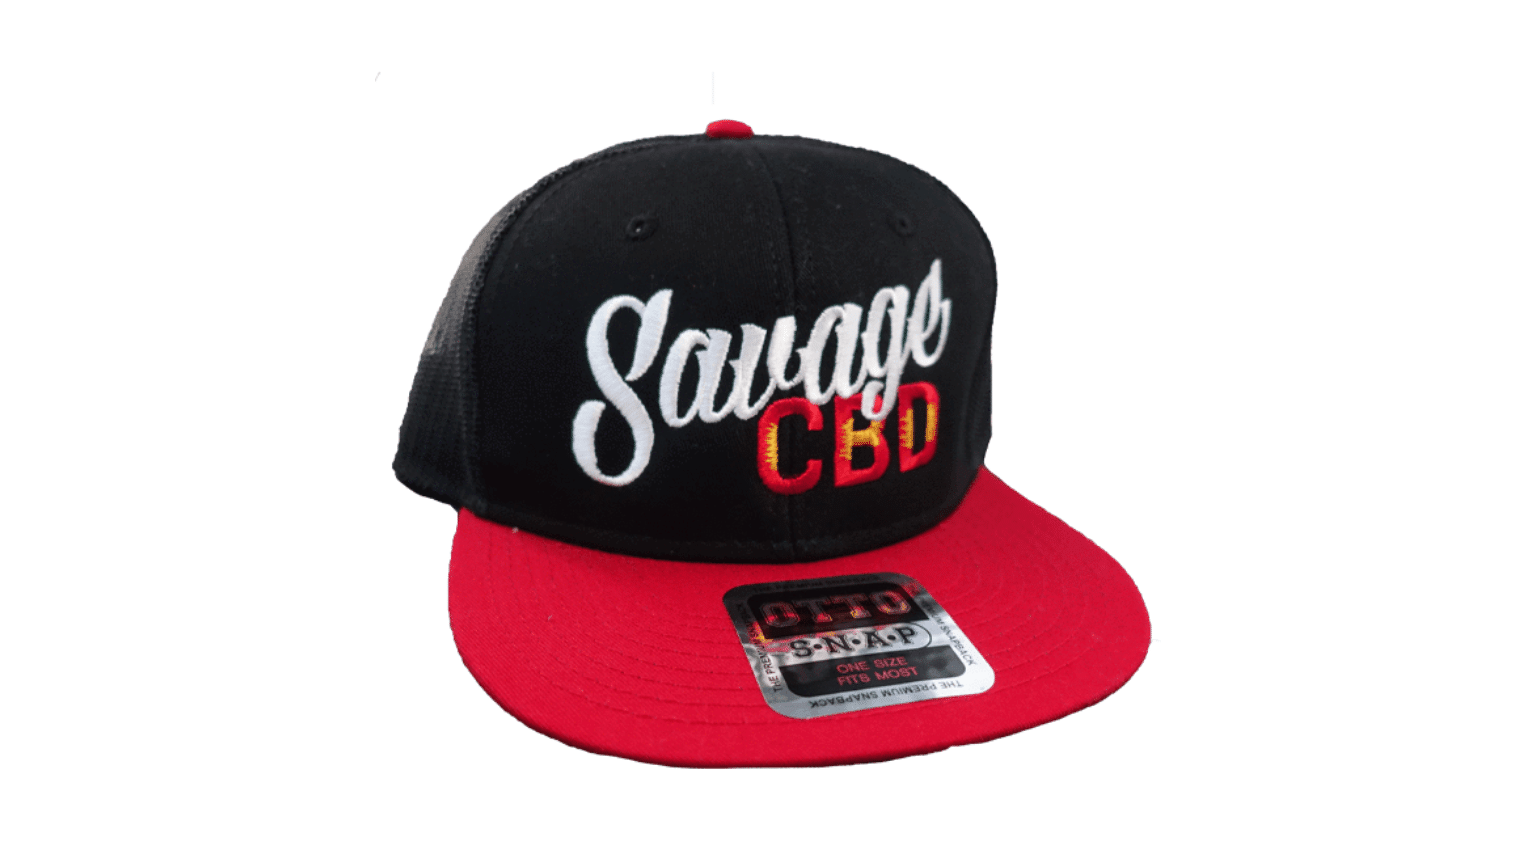 savage-cbd-hat